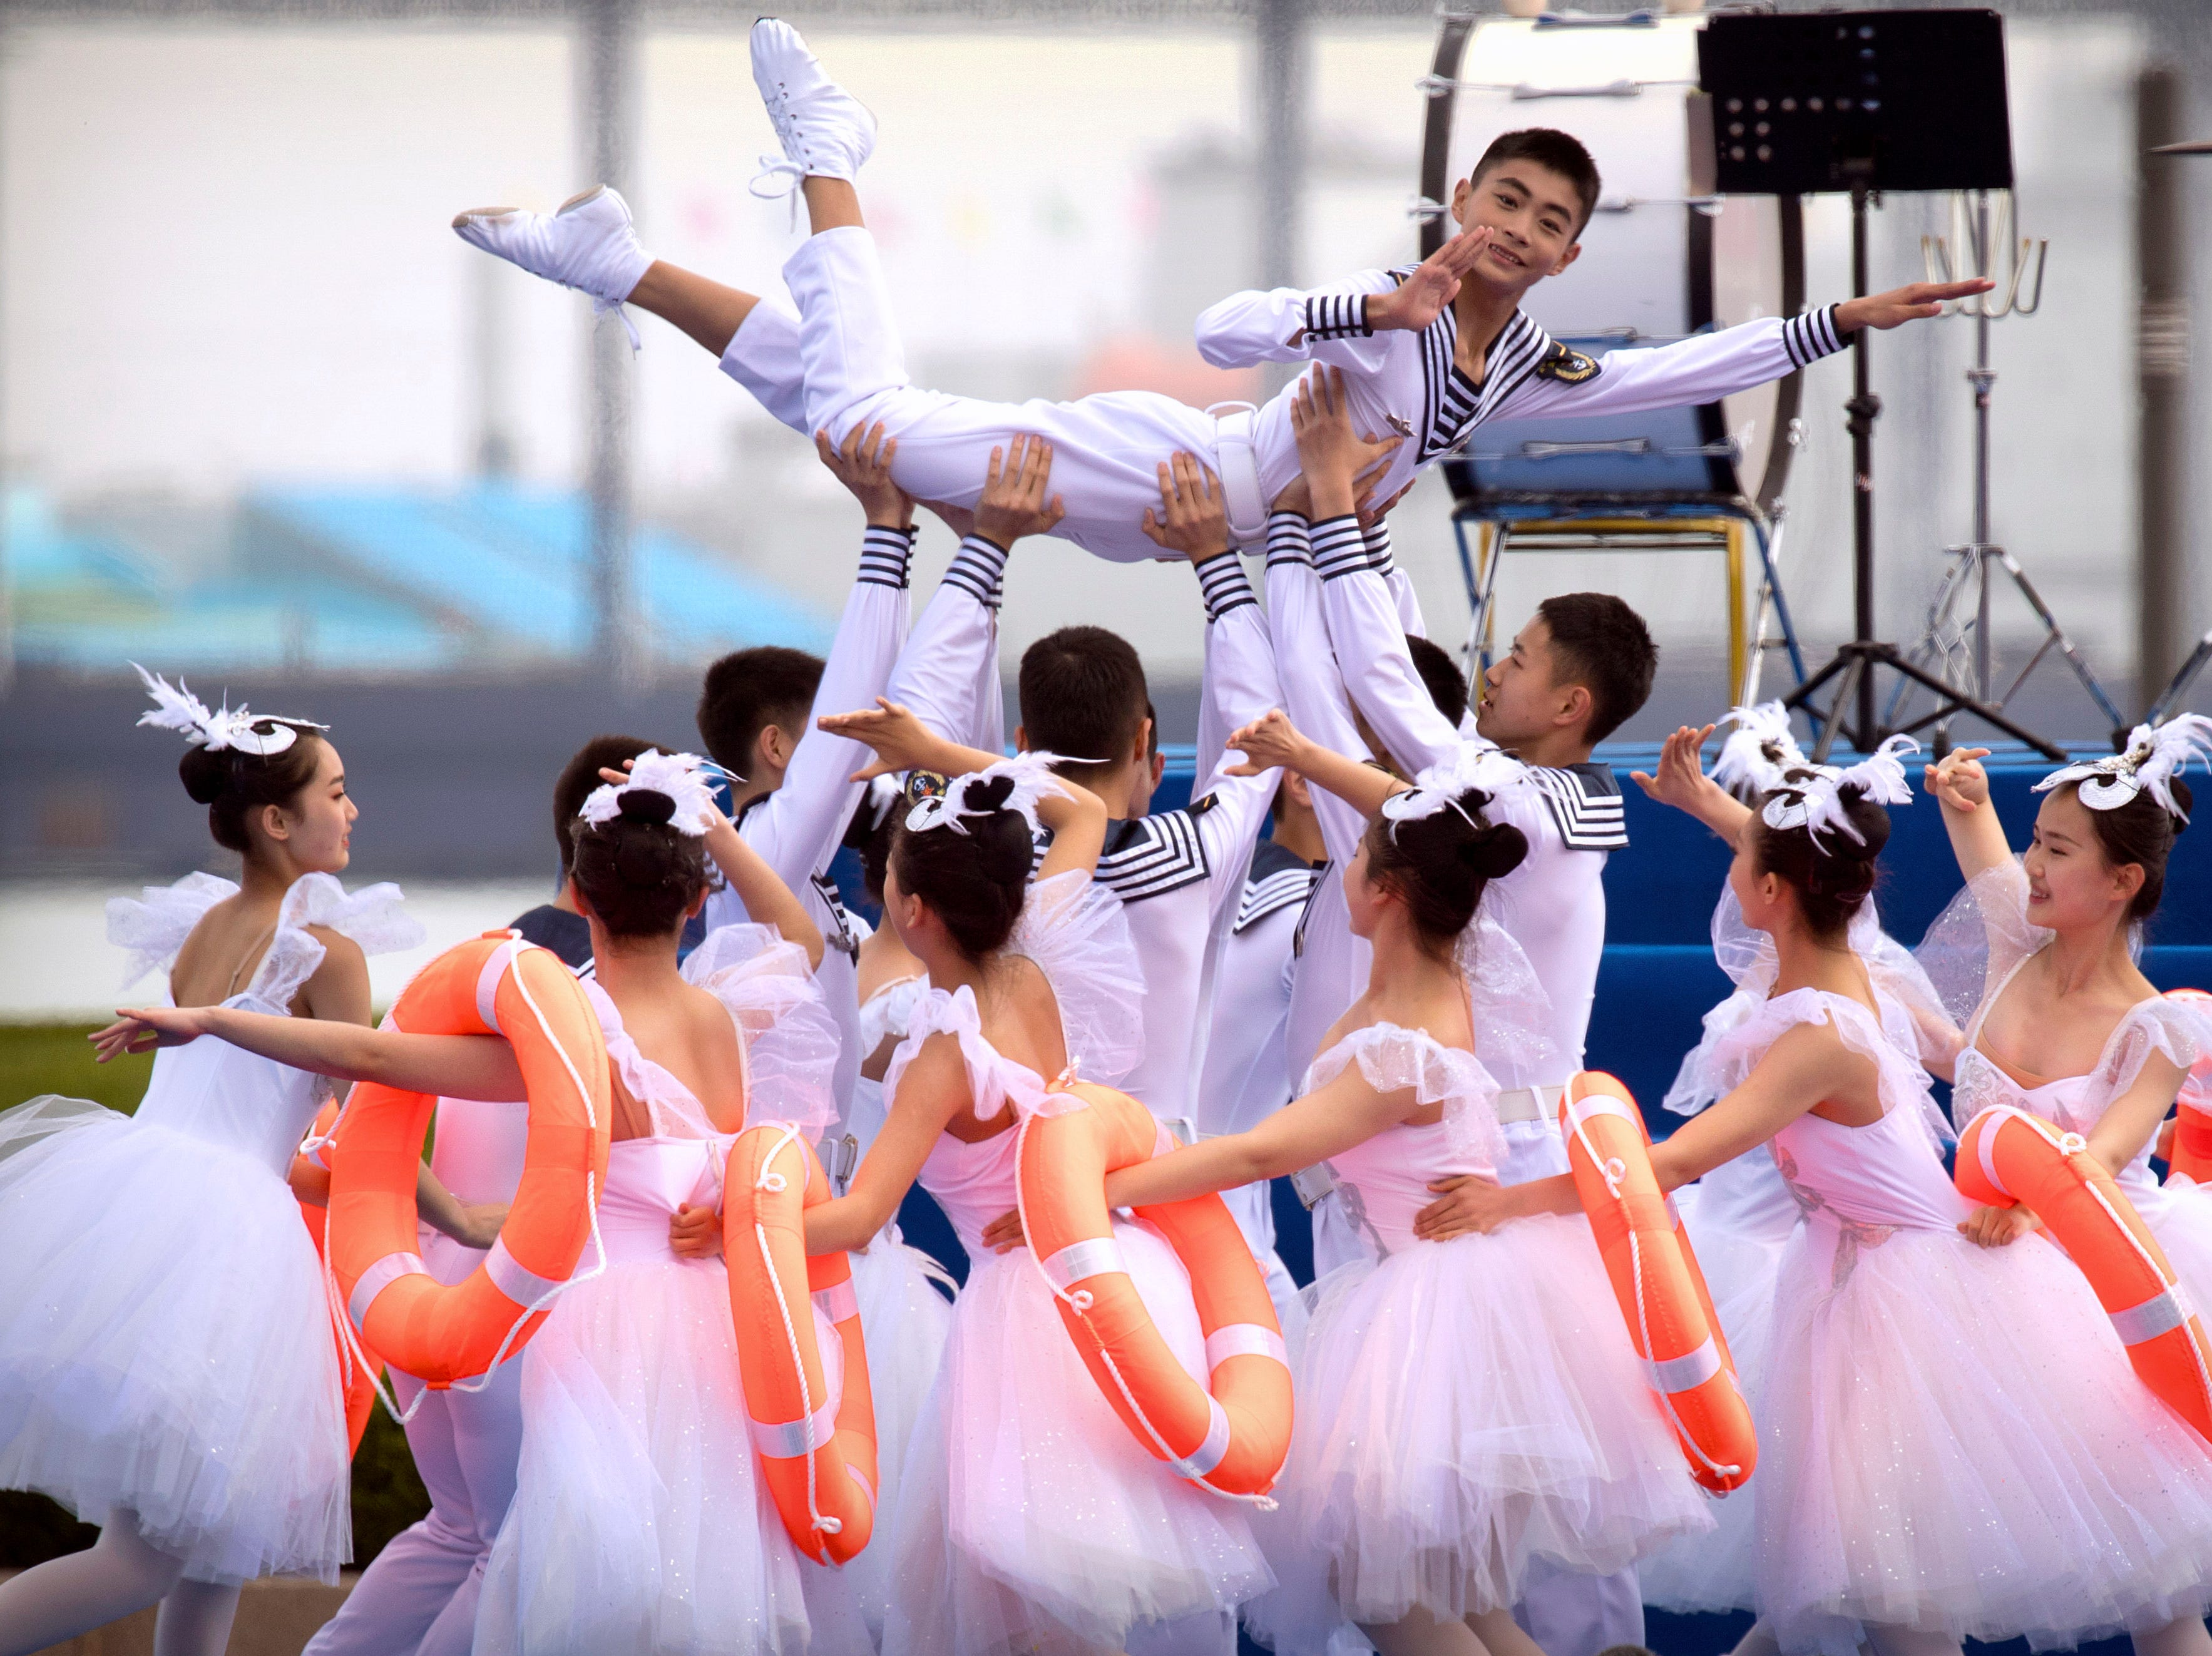 A Chinese military dance troupe performs during a concert featuring Chinese and foreign military bands in Qingdao, Monday, April 22, 2019. Ships from Chinese and foreign navies have gathered in Qingdao for events this week, including a naval parade, to mark the 70th anniversary of the founding of the People's Liberation Army (PLA) Navy.